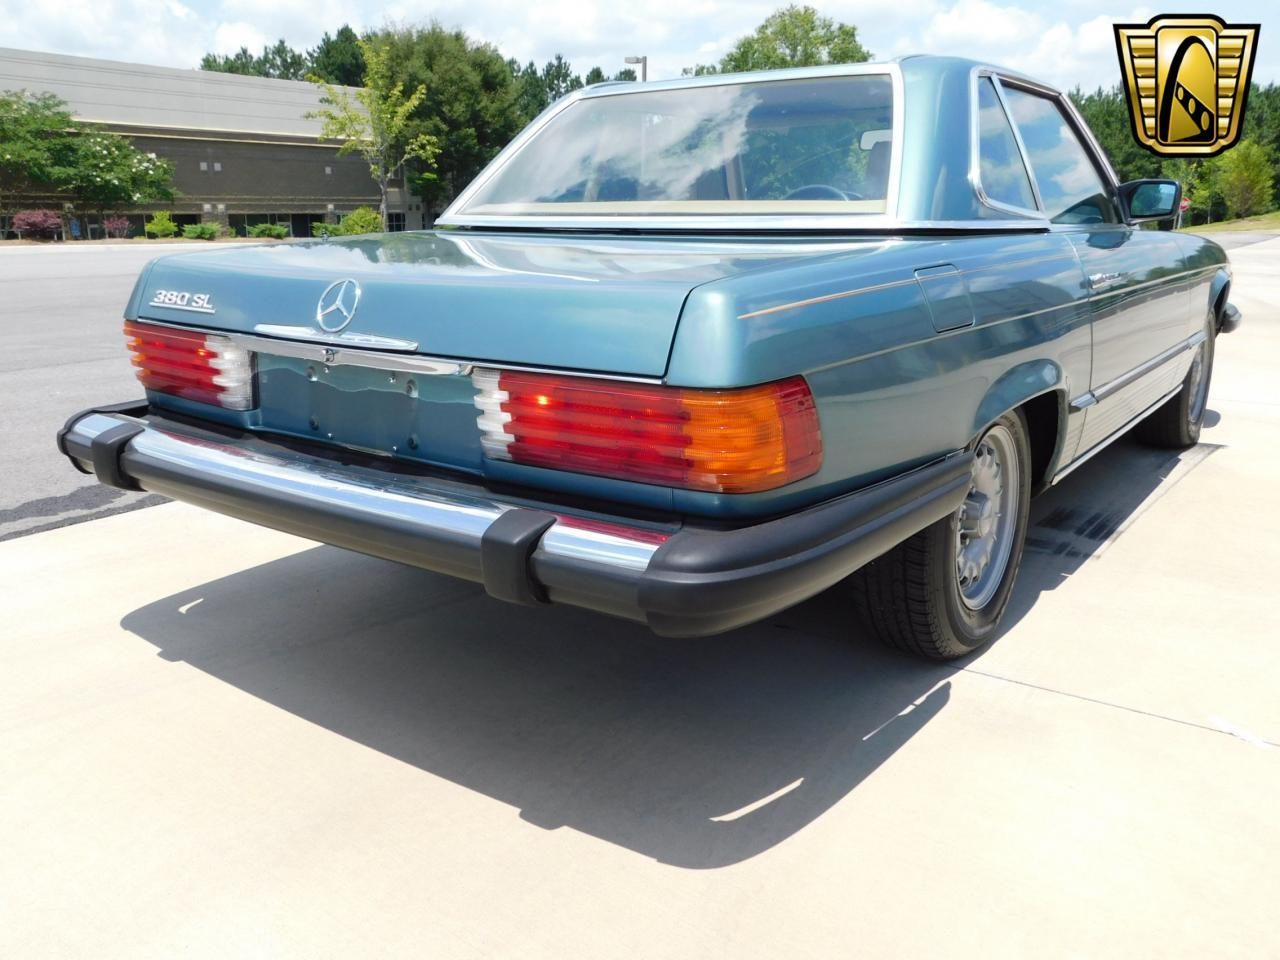 Large Picture of '85 Mercedes-Benz 380SL - $13,595.00 Offered by Gateway Classic Cars - Atlanta - LBSX